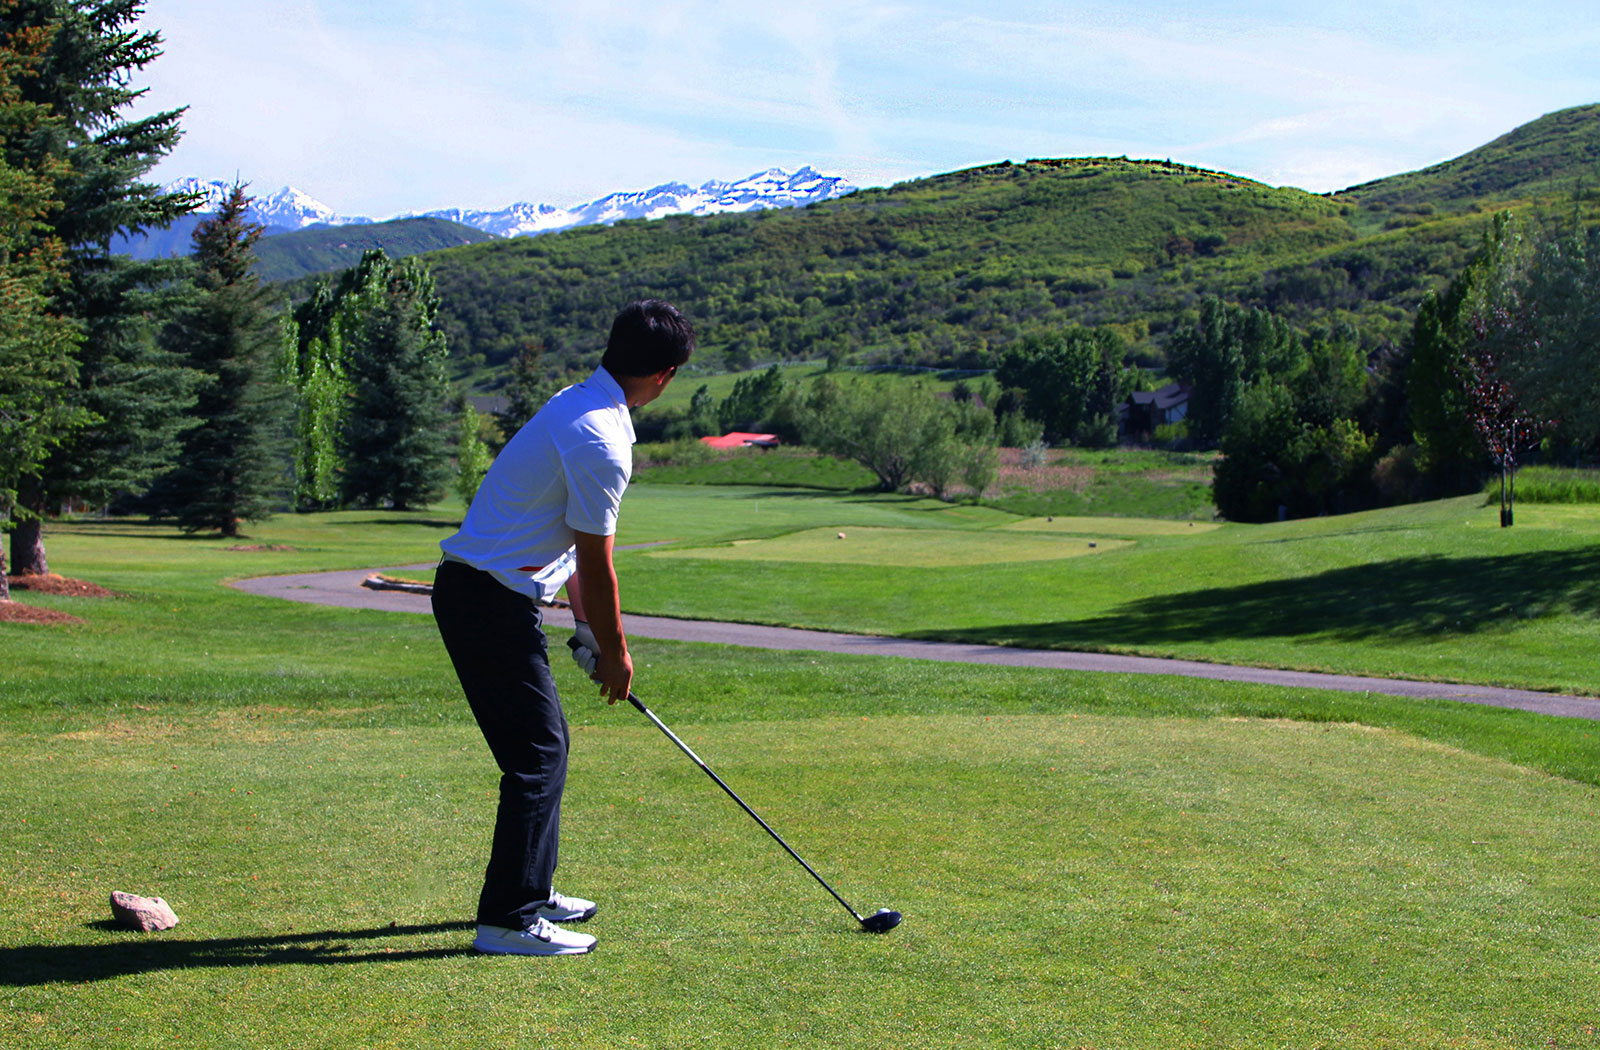 Man golfing at Crater Springs Golf Course at Homestead Resort in Heber, Utah.